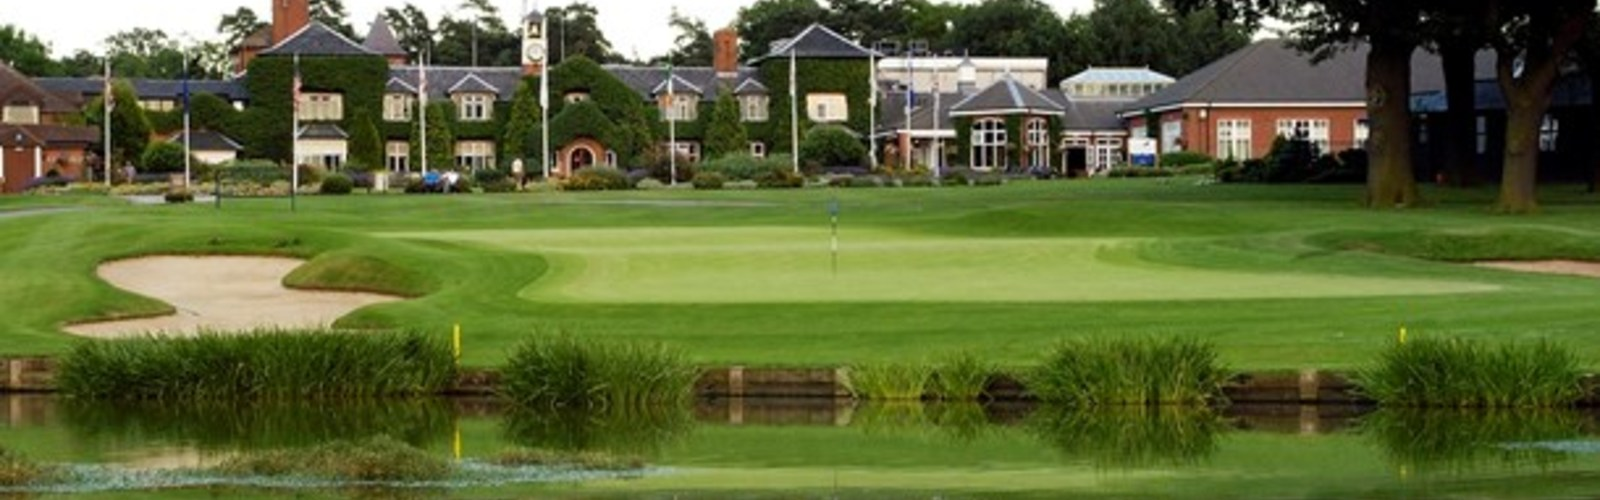 The belfry brabazon 18th hole and hotel